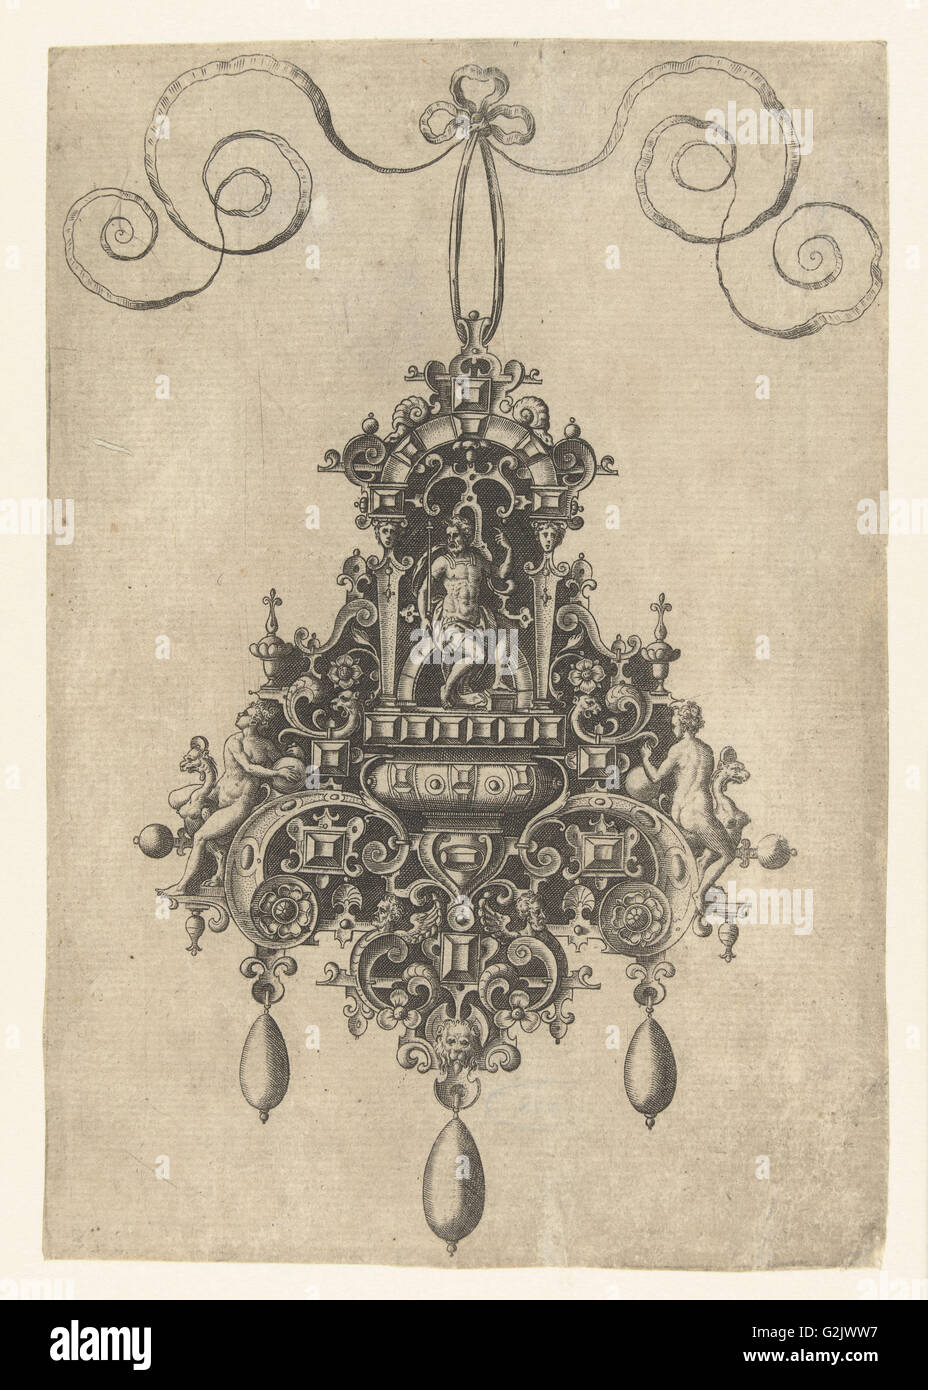 Hanger with armored seated deity, print maker: Anonymous, Hans Collaert I, Philips Galle, 1581 - Stock Image